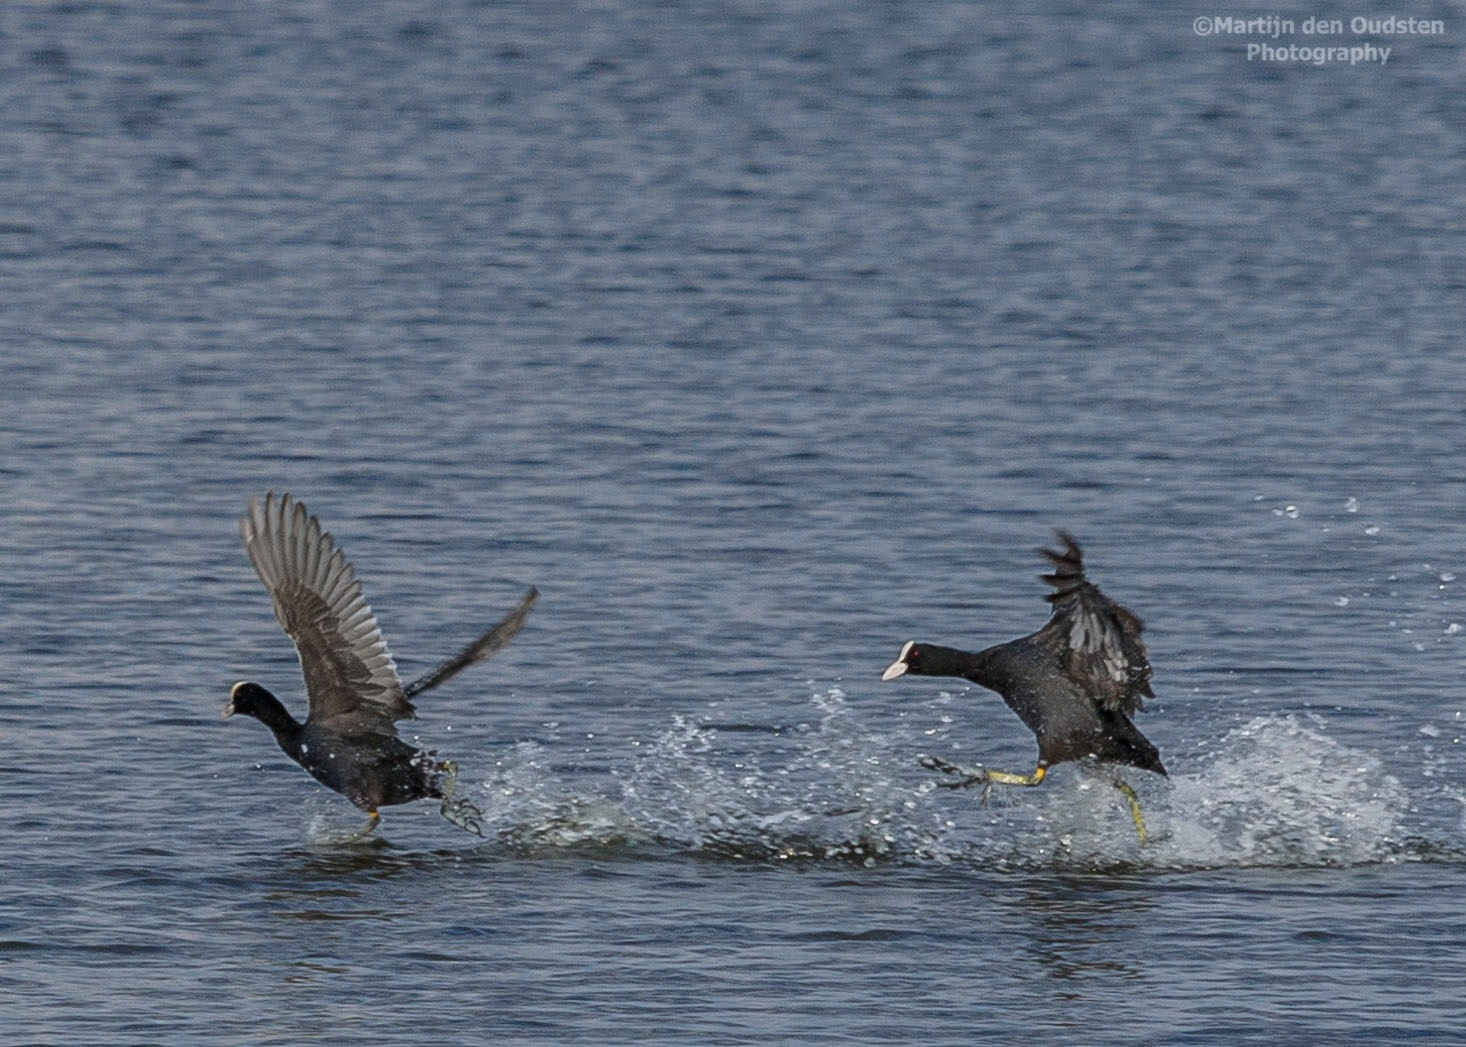 Coots on the chase by Martijn Den Oudsten